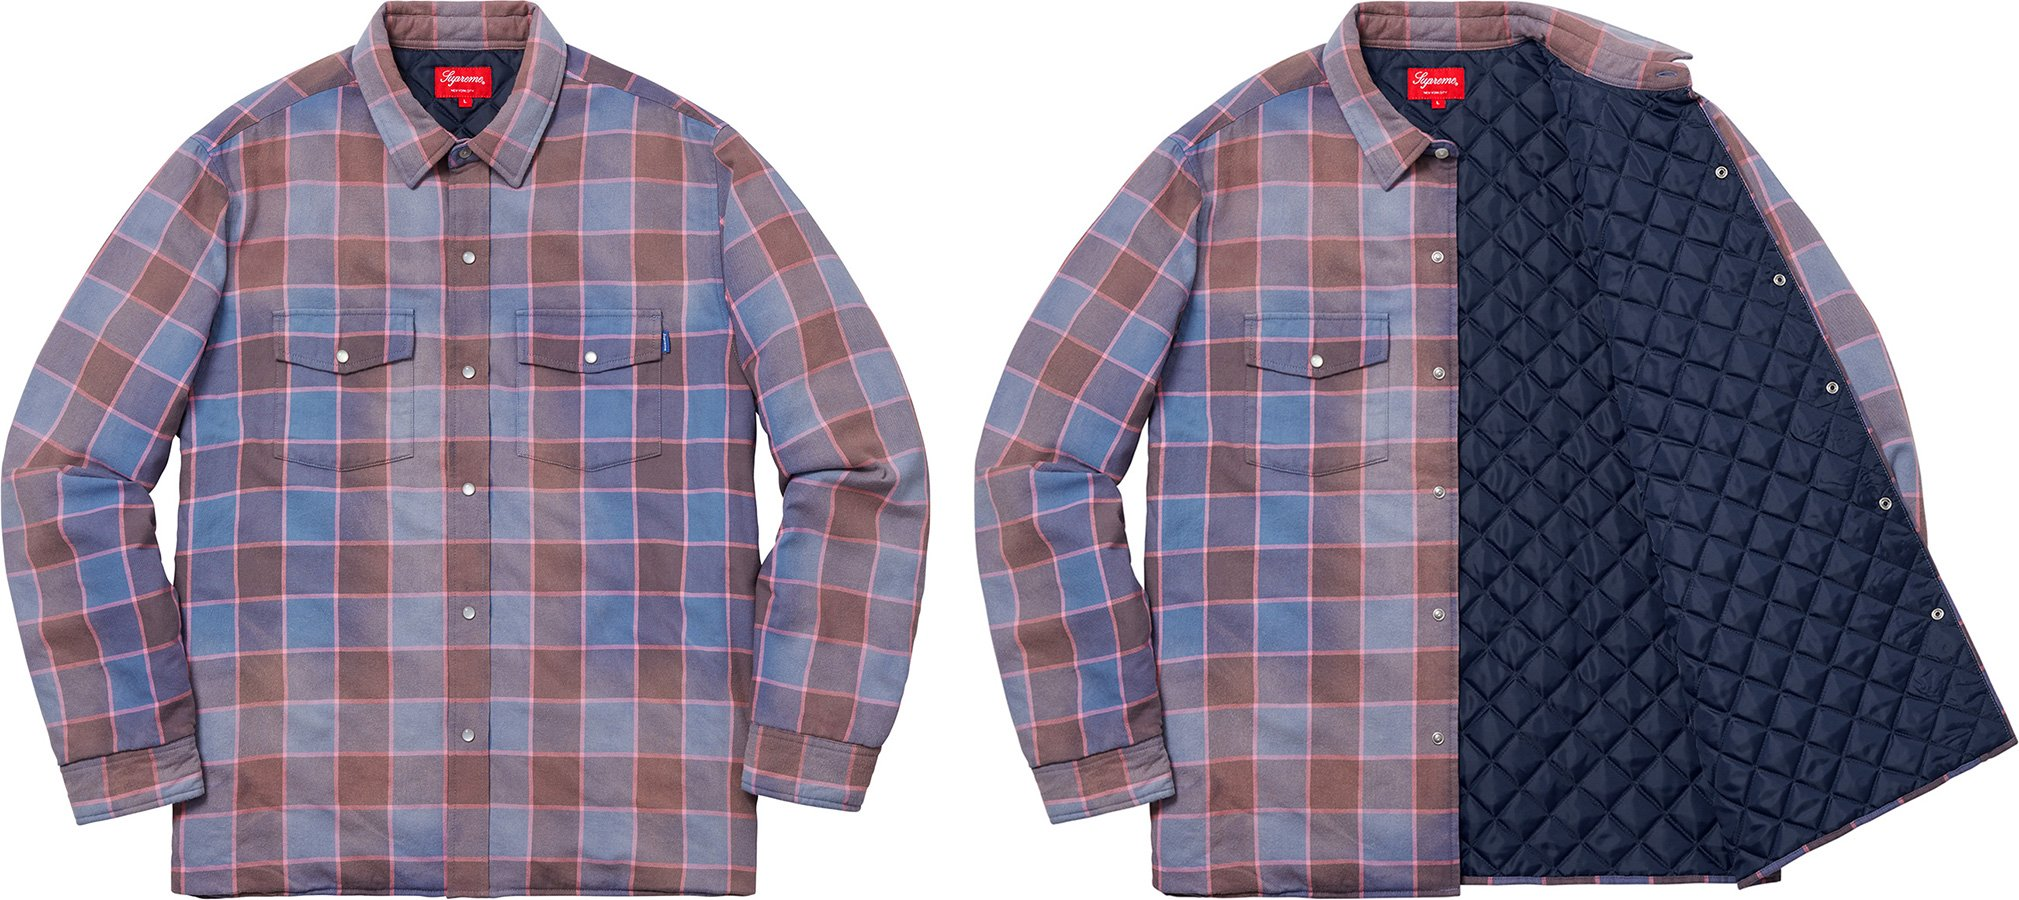 supreme-18aw-fall-winter-quilted-faded-plaid-shirt